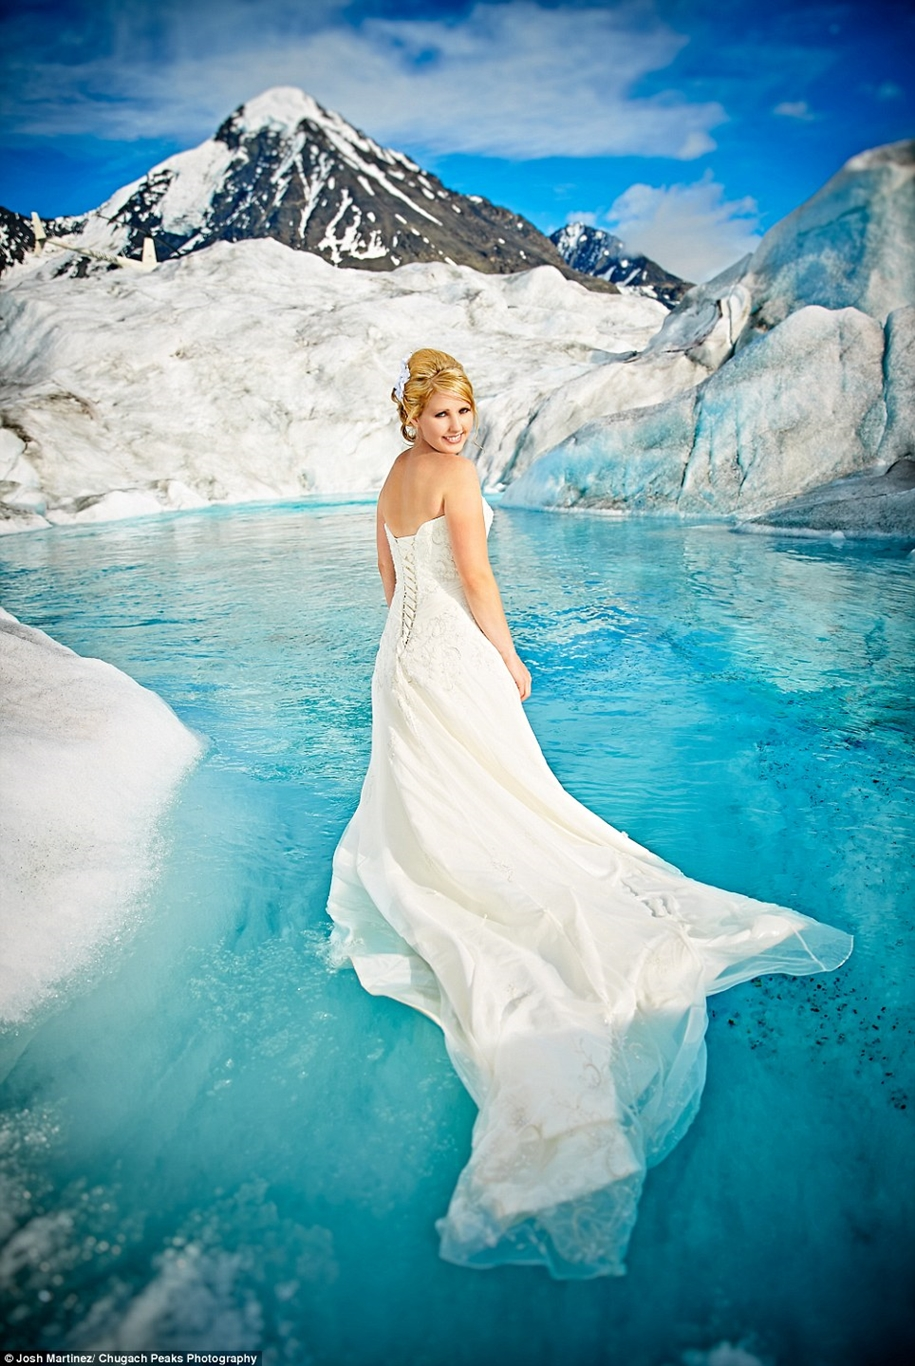 Wedding photos in a fantastic turquoise color, made on the glacier in Alaska 03